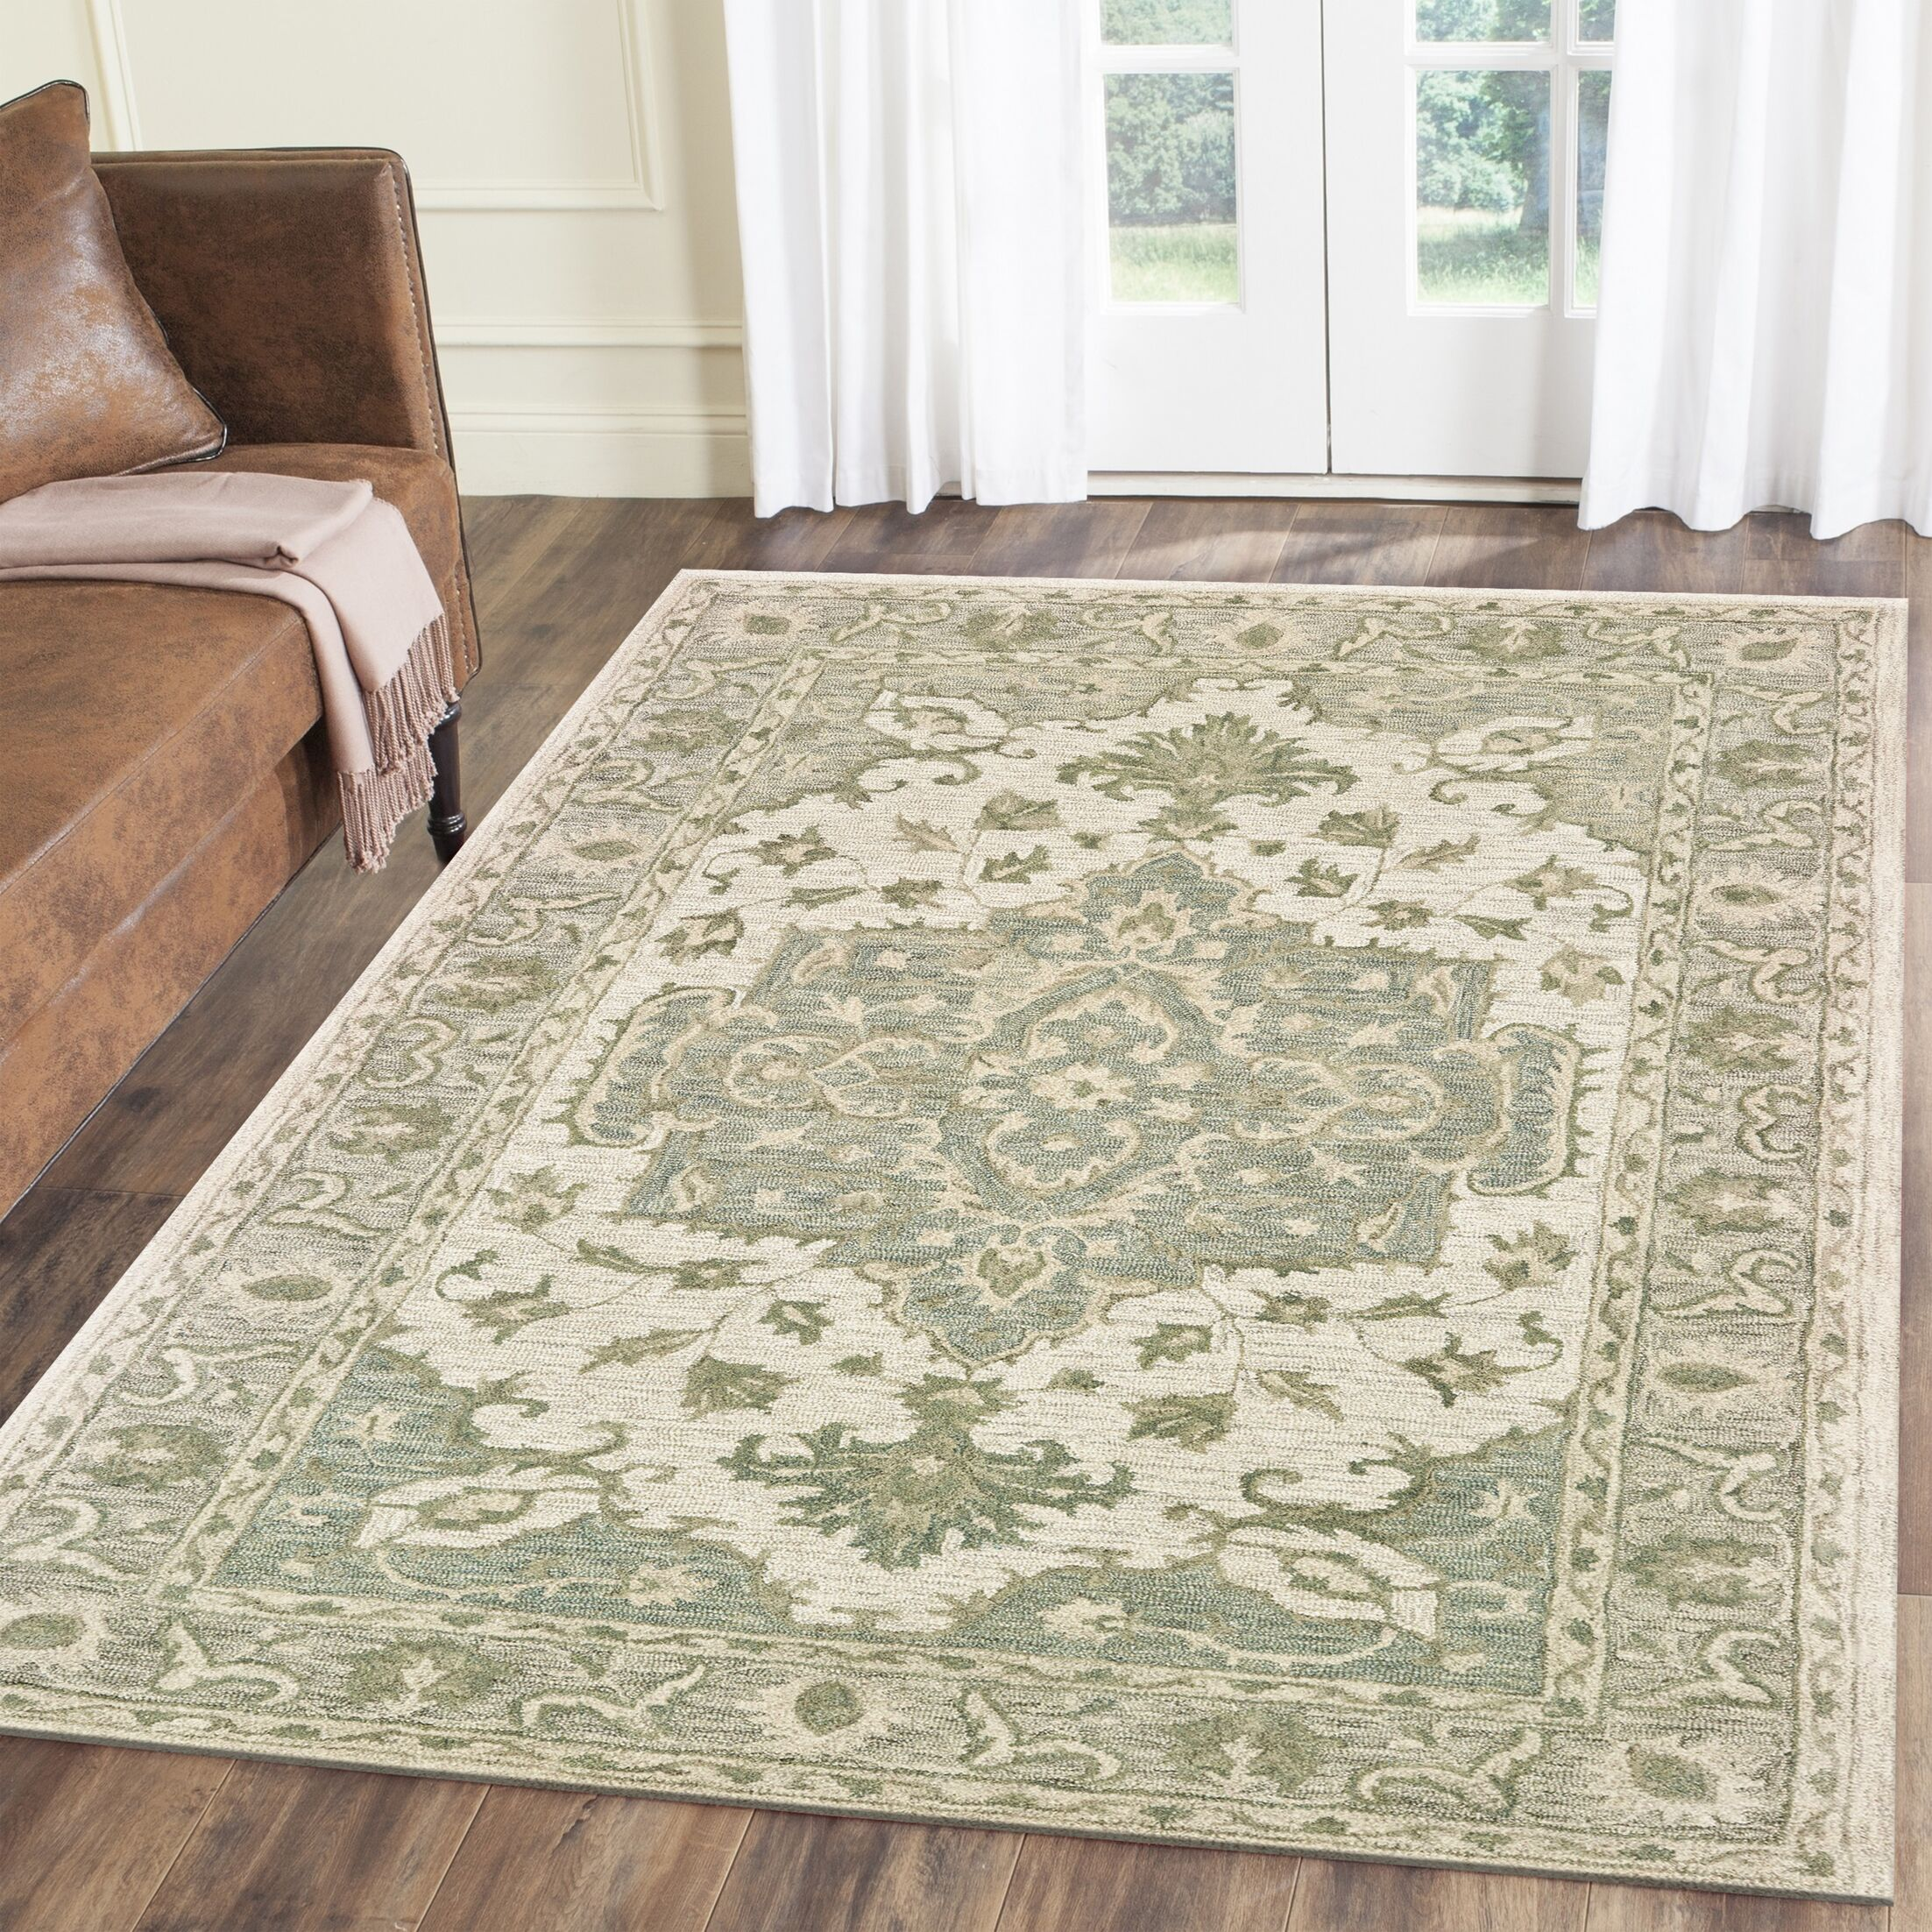 Deol Hand-Tufted Wool Teal Area Rug Rug Size: Rectangle 5' x 7'9